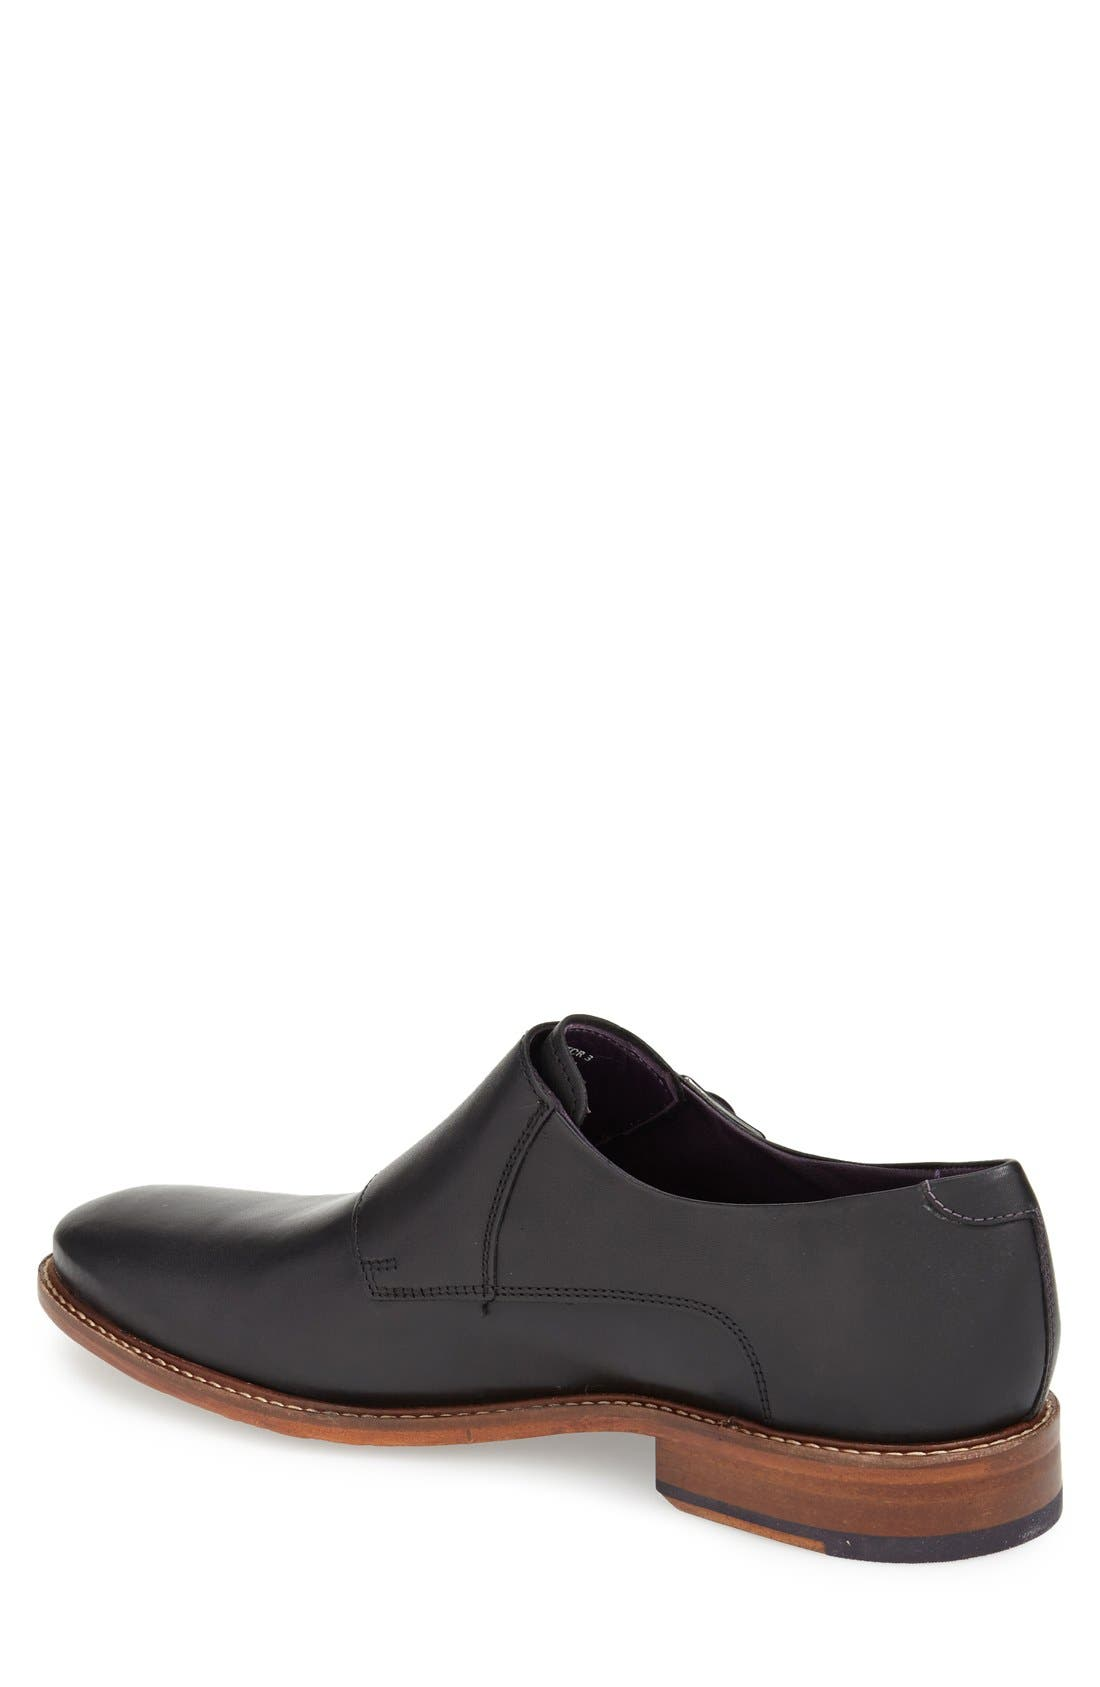 'Kartor 3' Double Monk Strap Shoe,                             Alternate thumbnail 2, color,                             Black